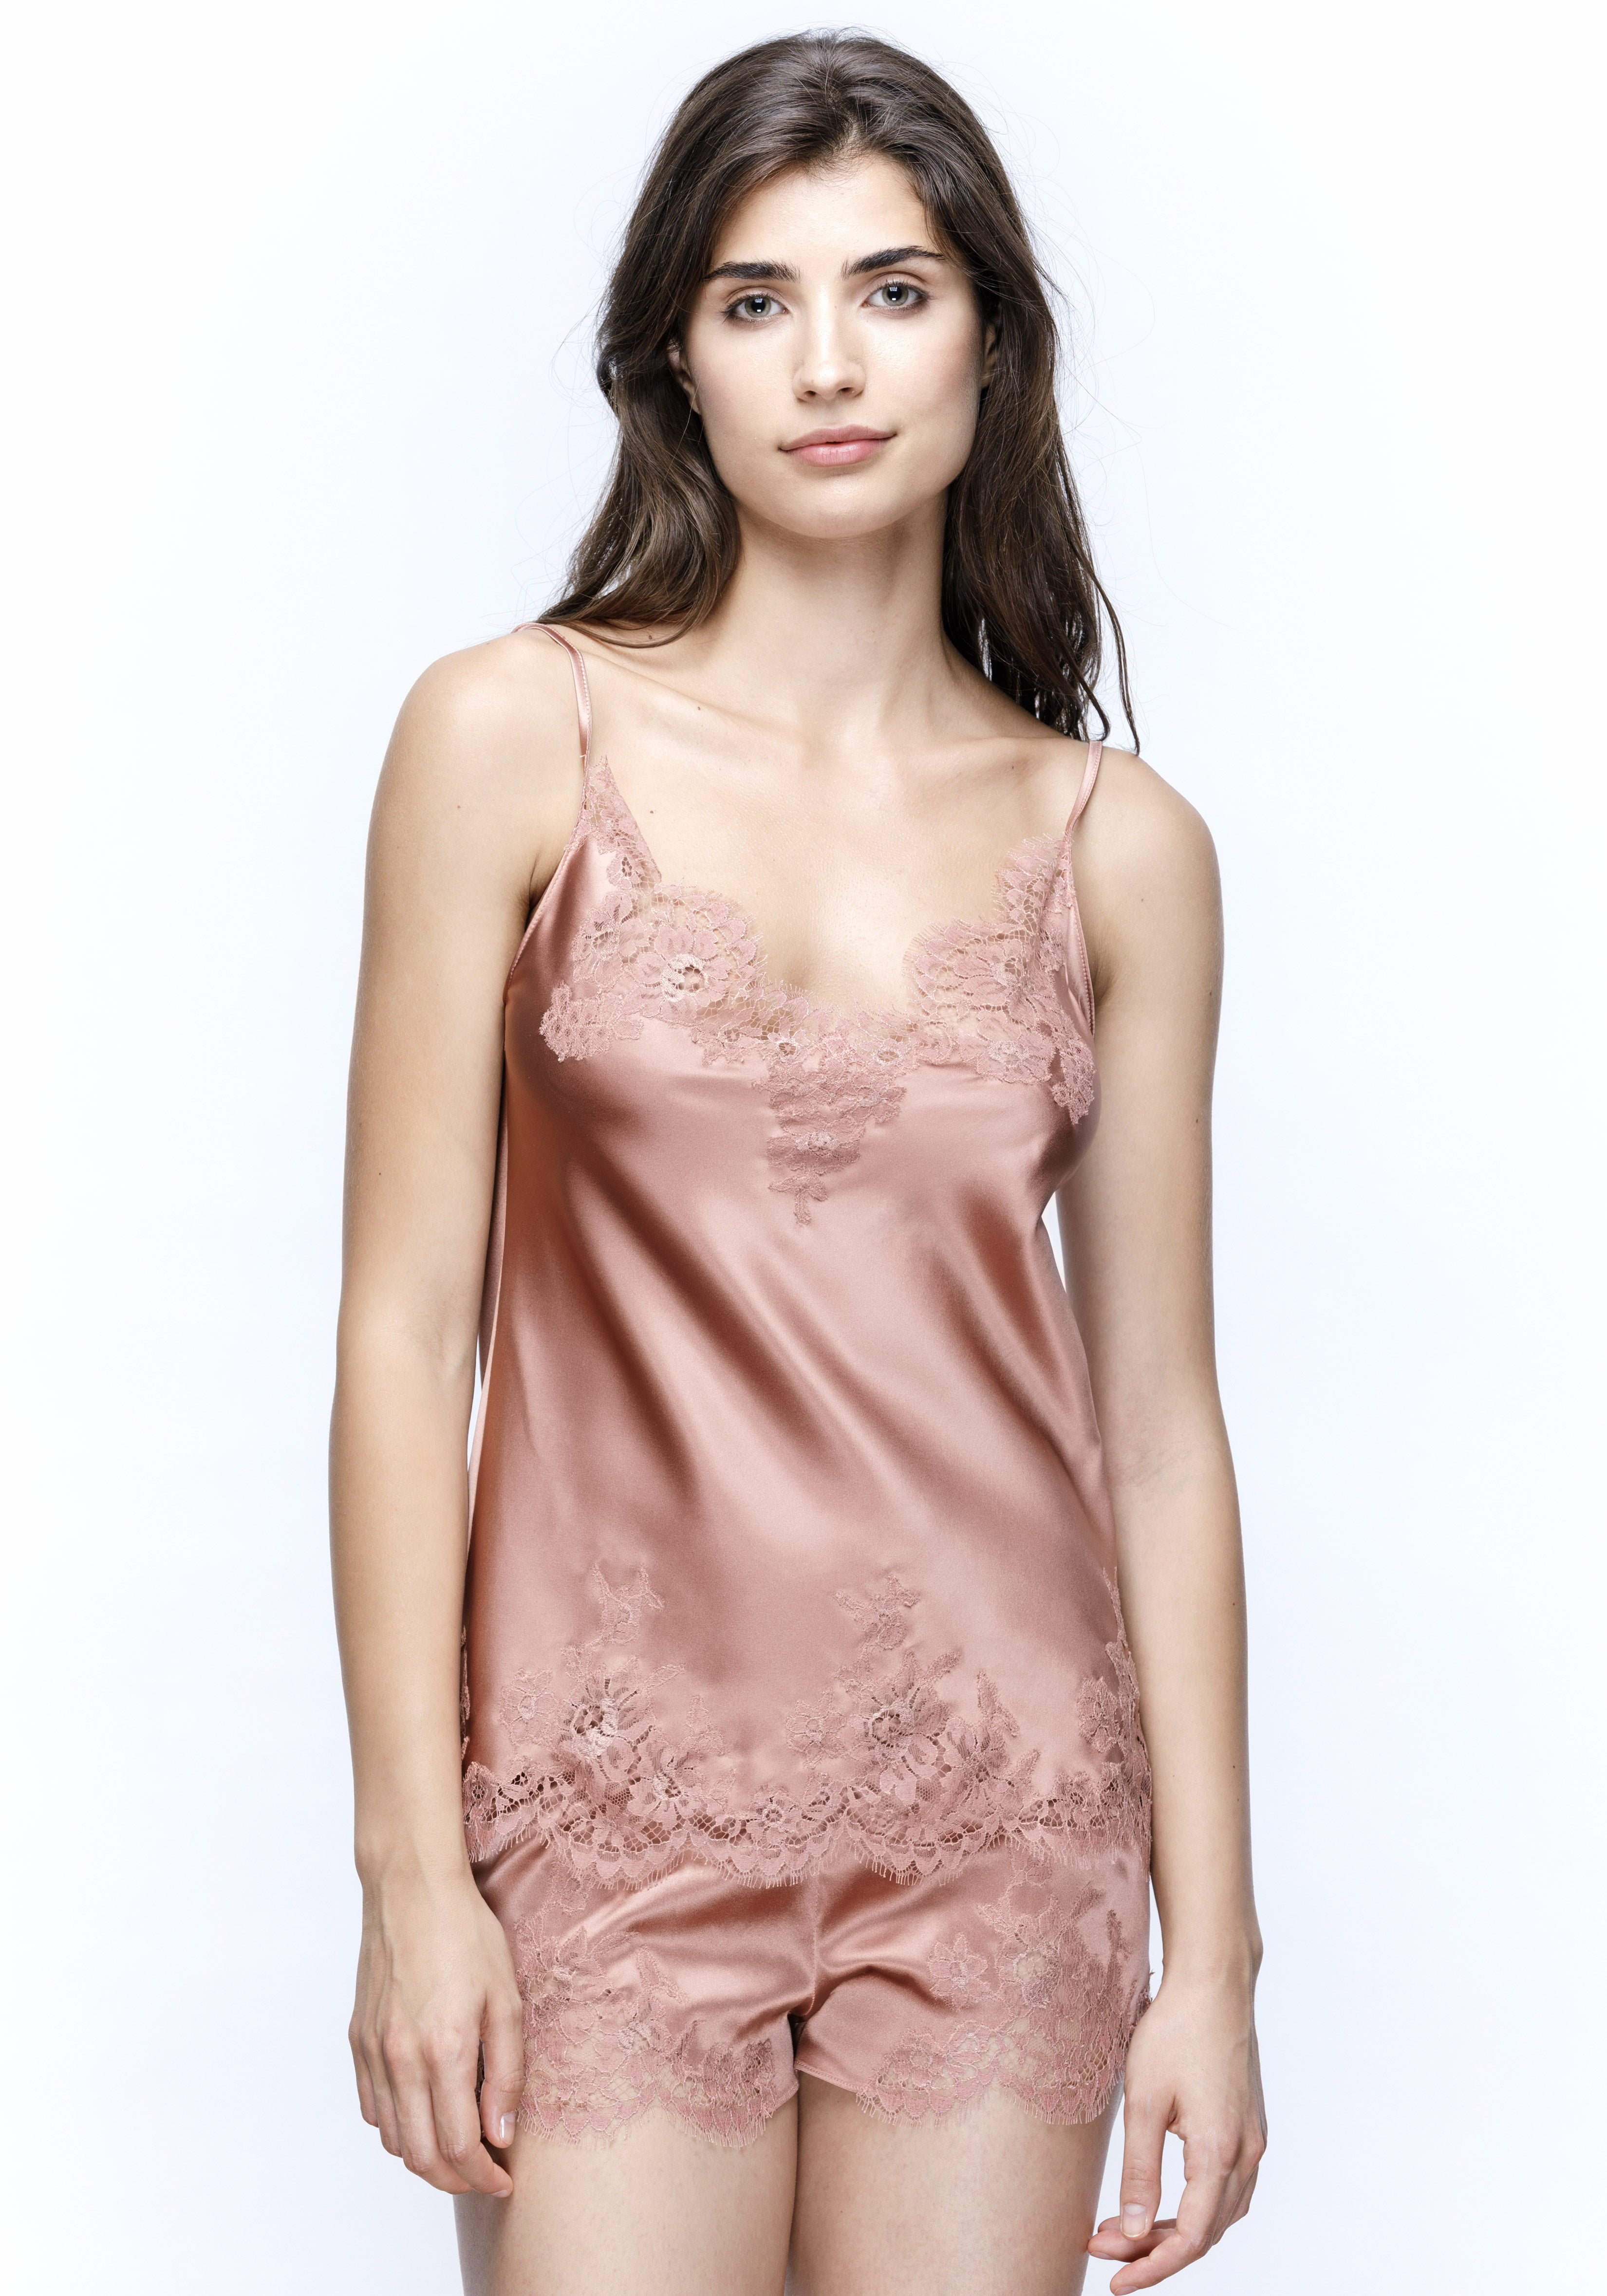 East of Eden Camisole in Cappuccino